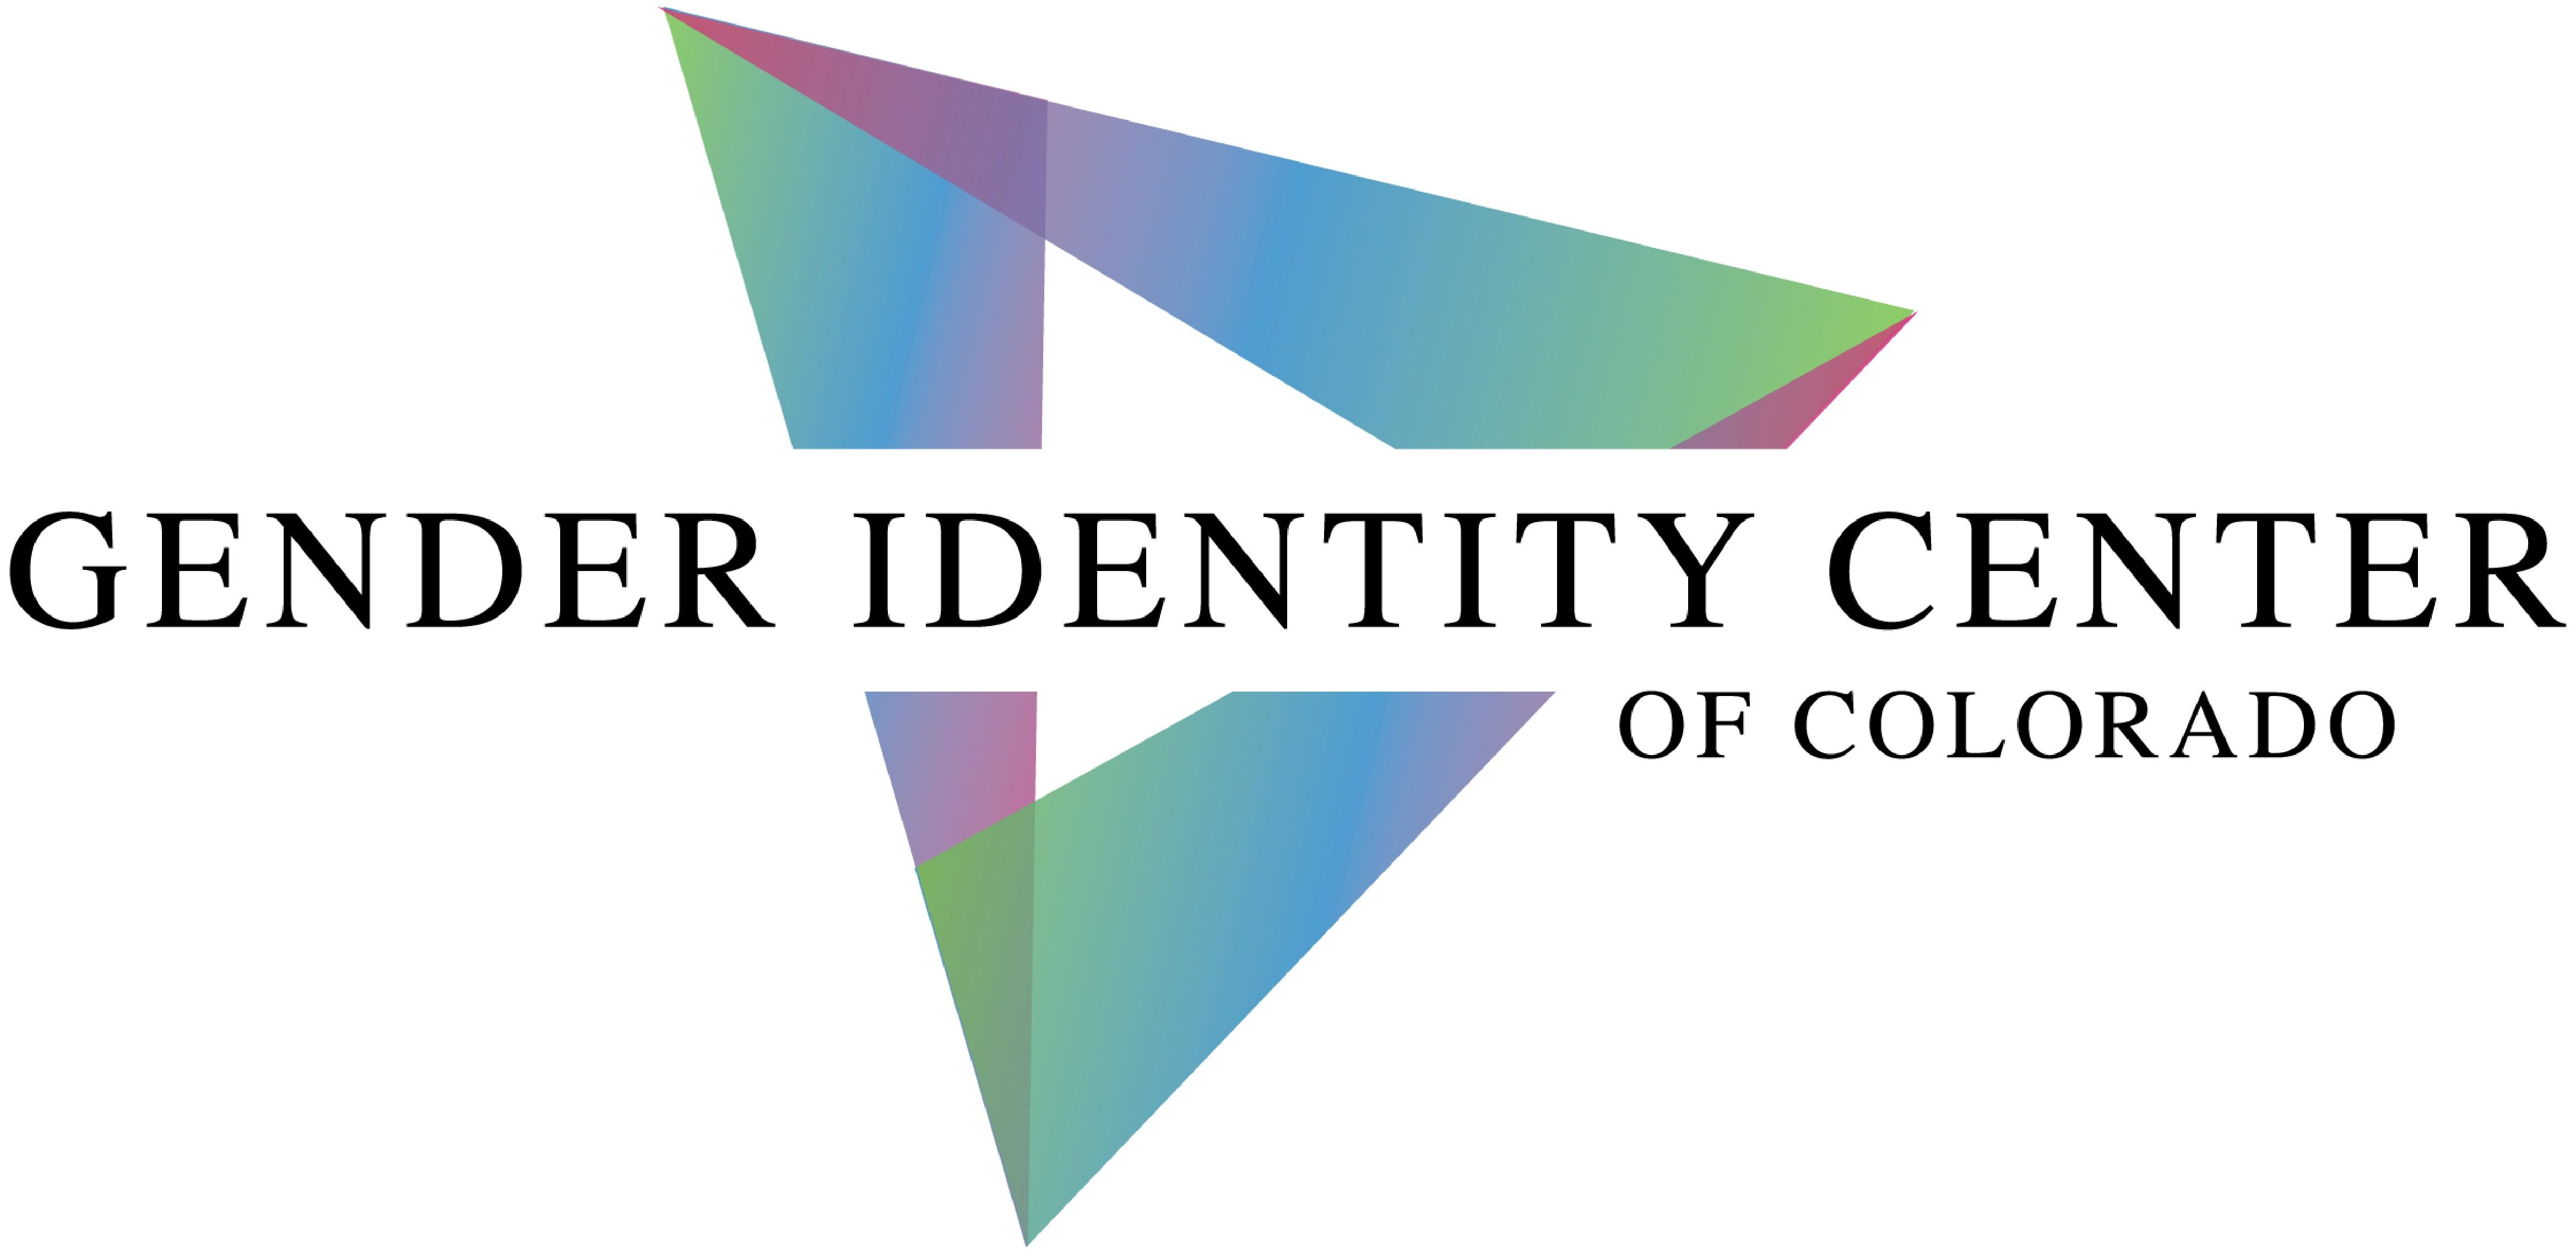 Gender identity center of CO